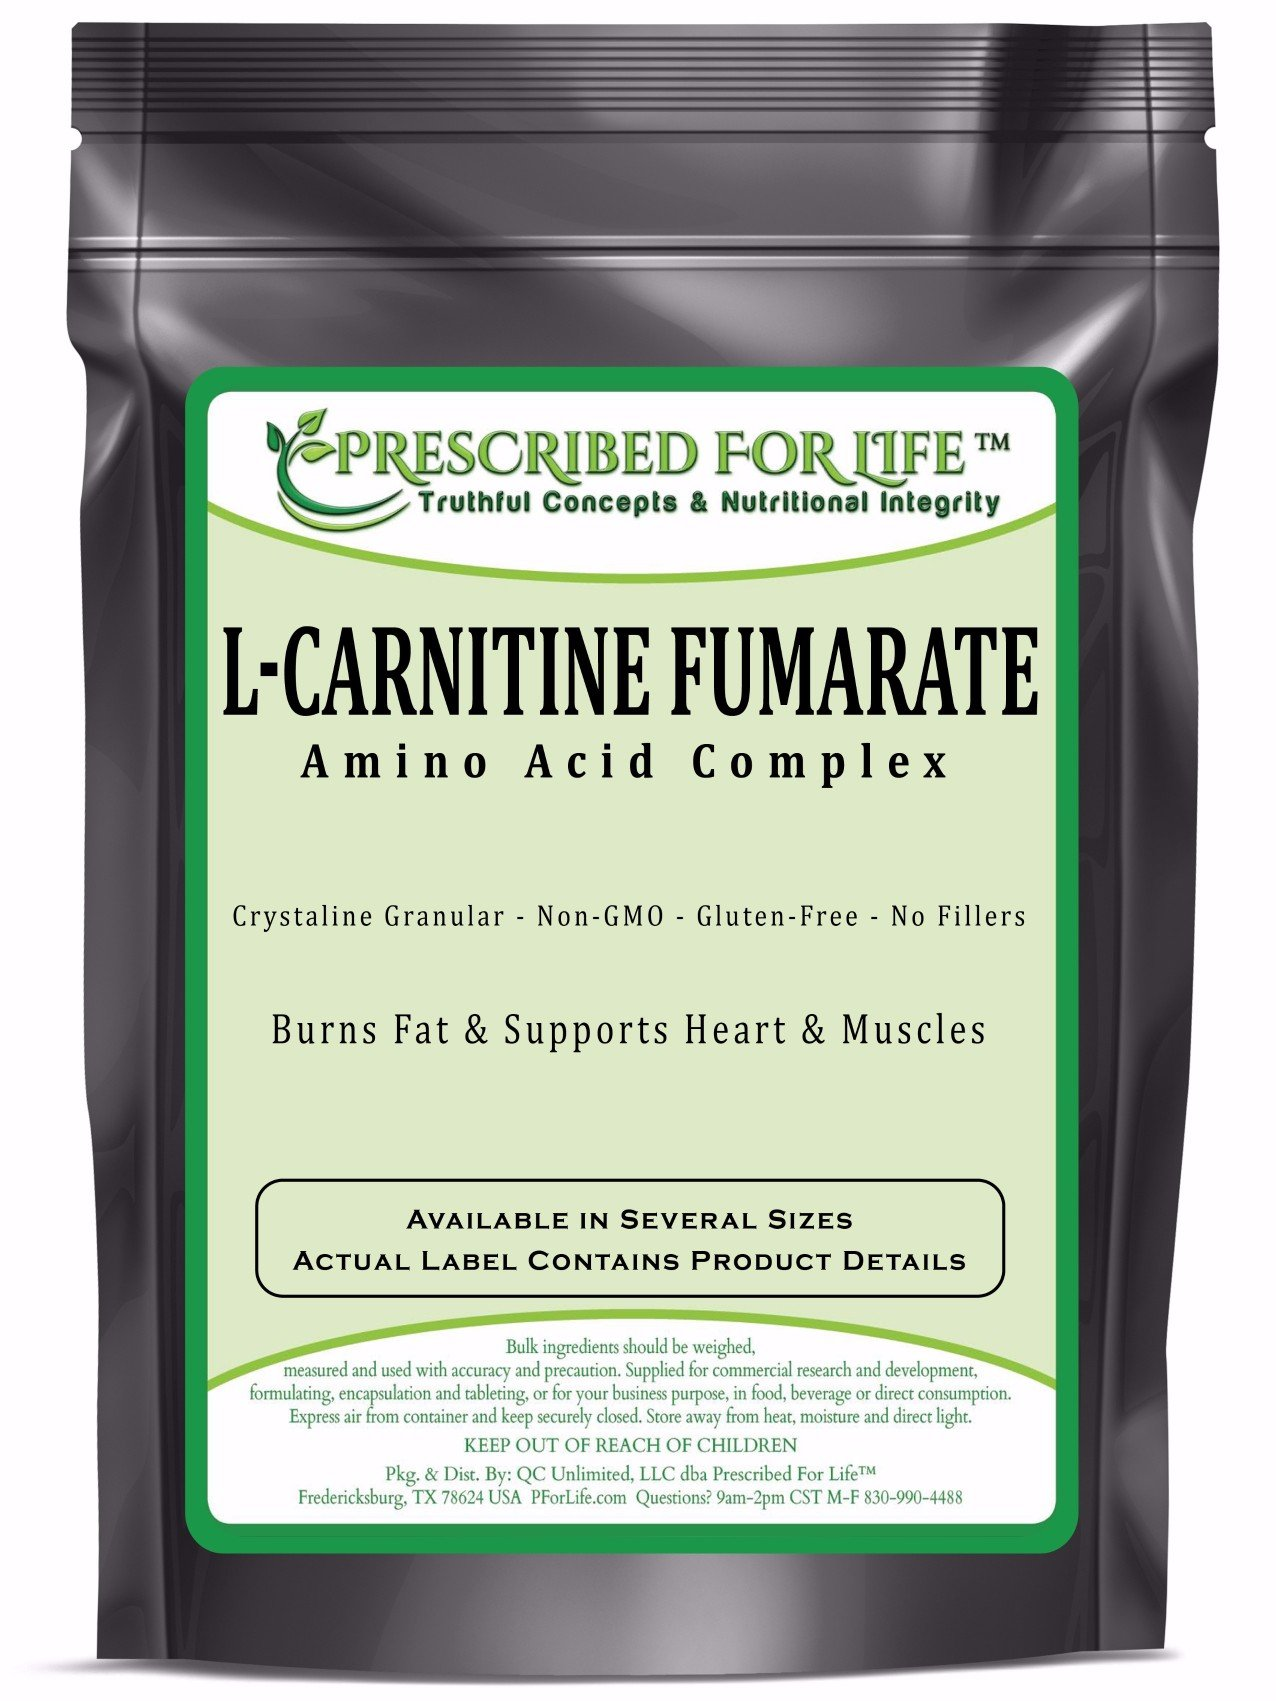 Carnitine Fumarate (L) - Amino Acid Weight Management Crystalline Powder, 2.5 lb by Prescribed For Life